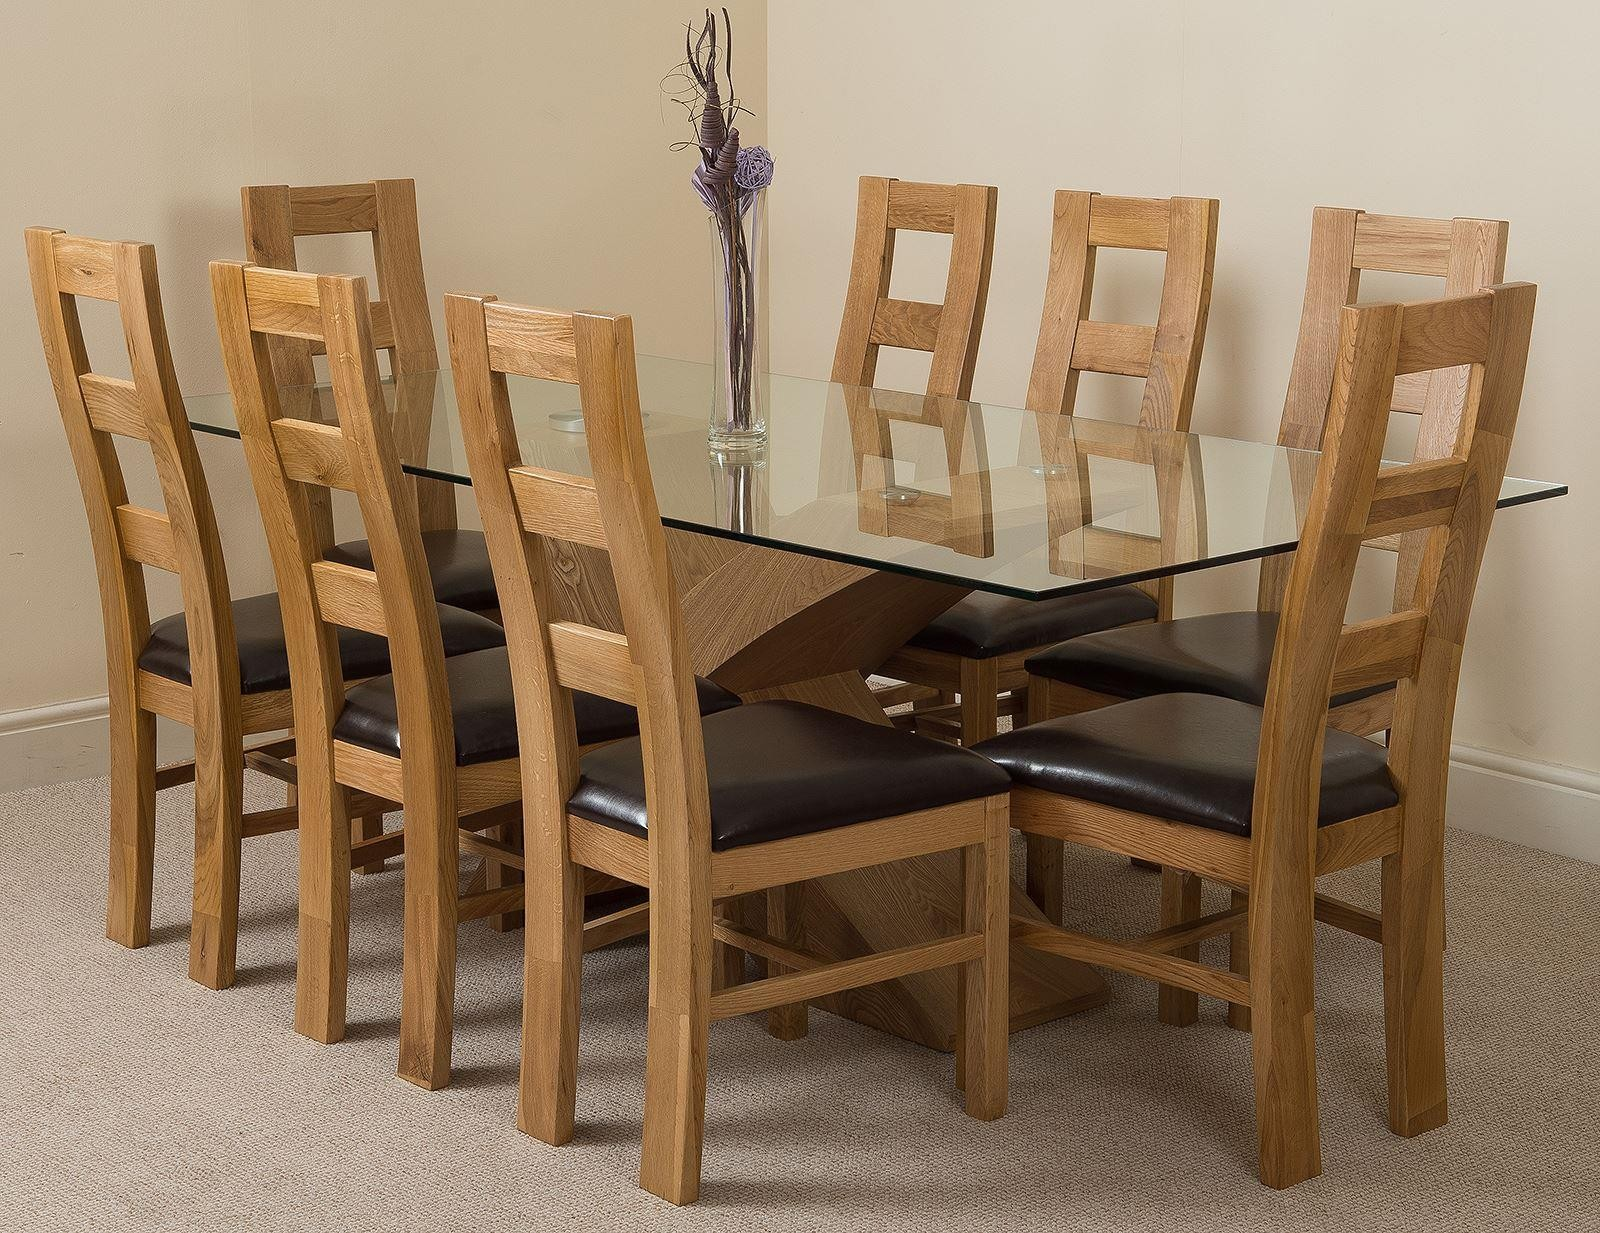 Valencia Oak 200cm Wood and Glass Dining Table with 8 Yale Solid Oak Dining Chairs [Light Oak and Brown Leather]